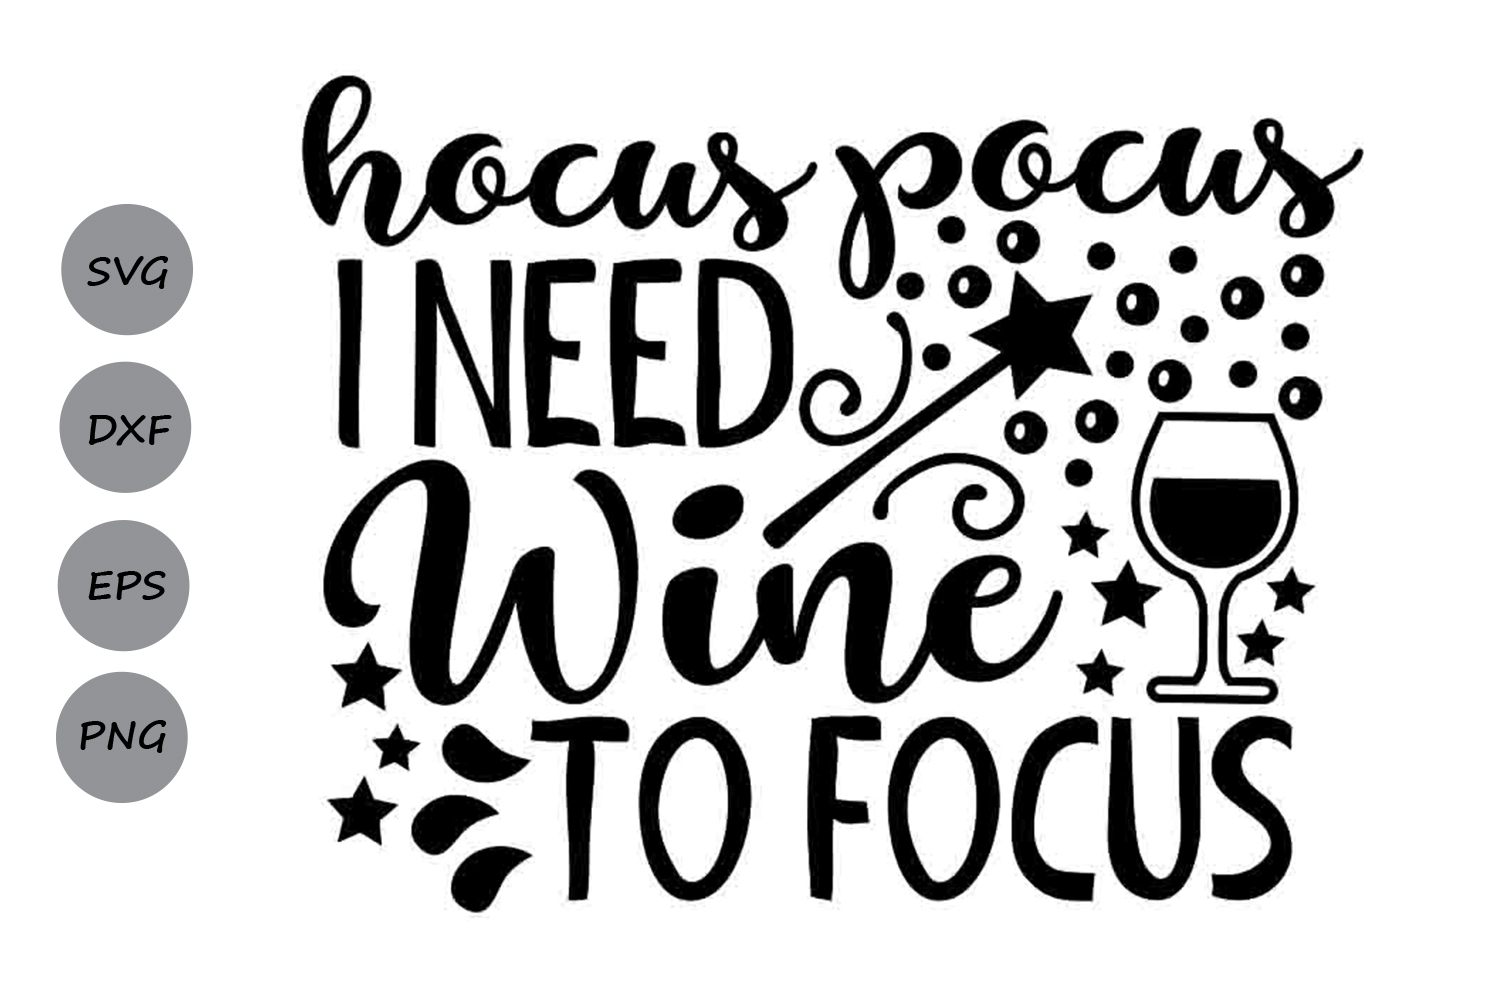 Download Free Hocus Pocus I Need Wine To Focus Svg Graphic By Cosmosfineart for Cricut Explore, Silhouette and other cutting machines.